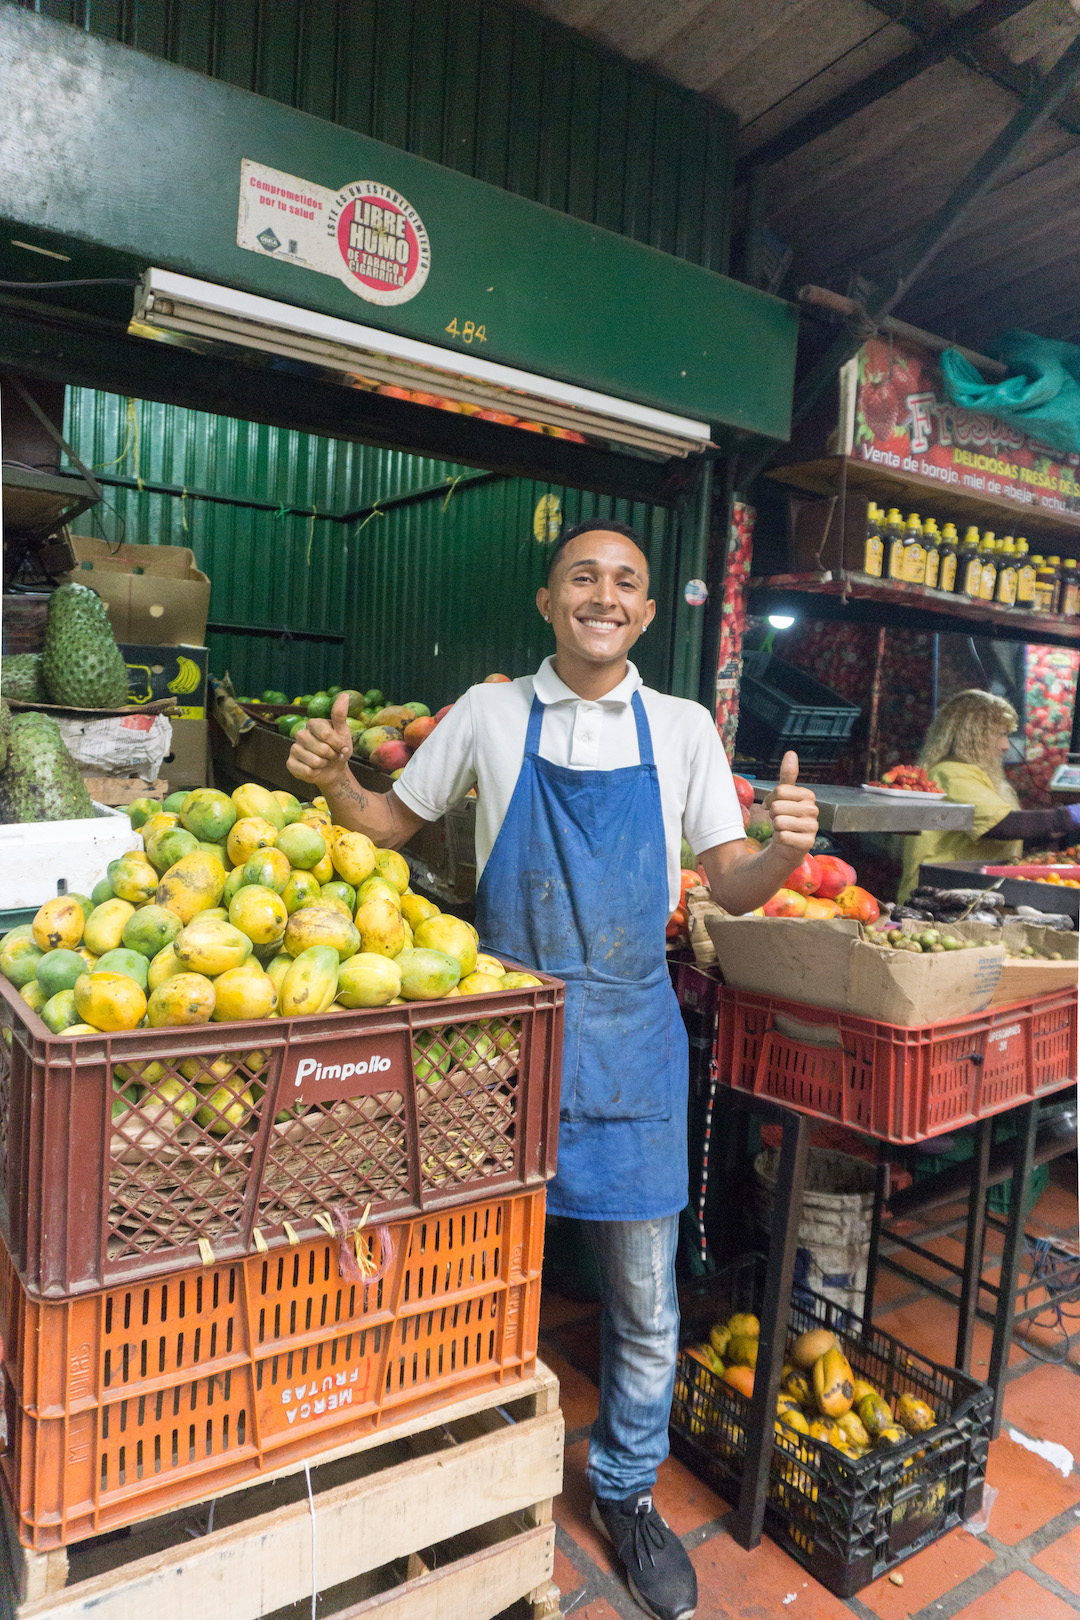 A fruit seller at Minorista Market in Medellin